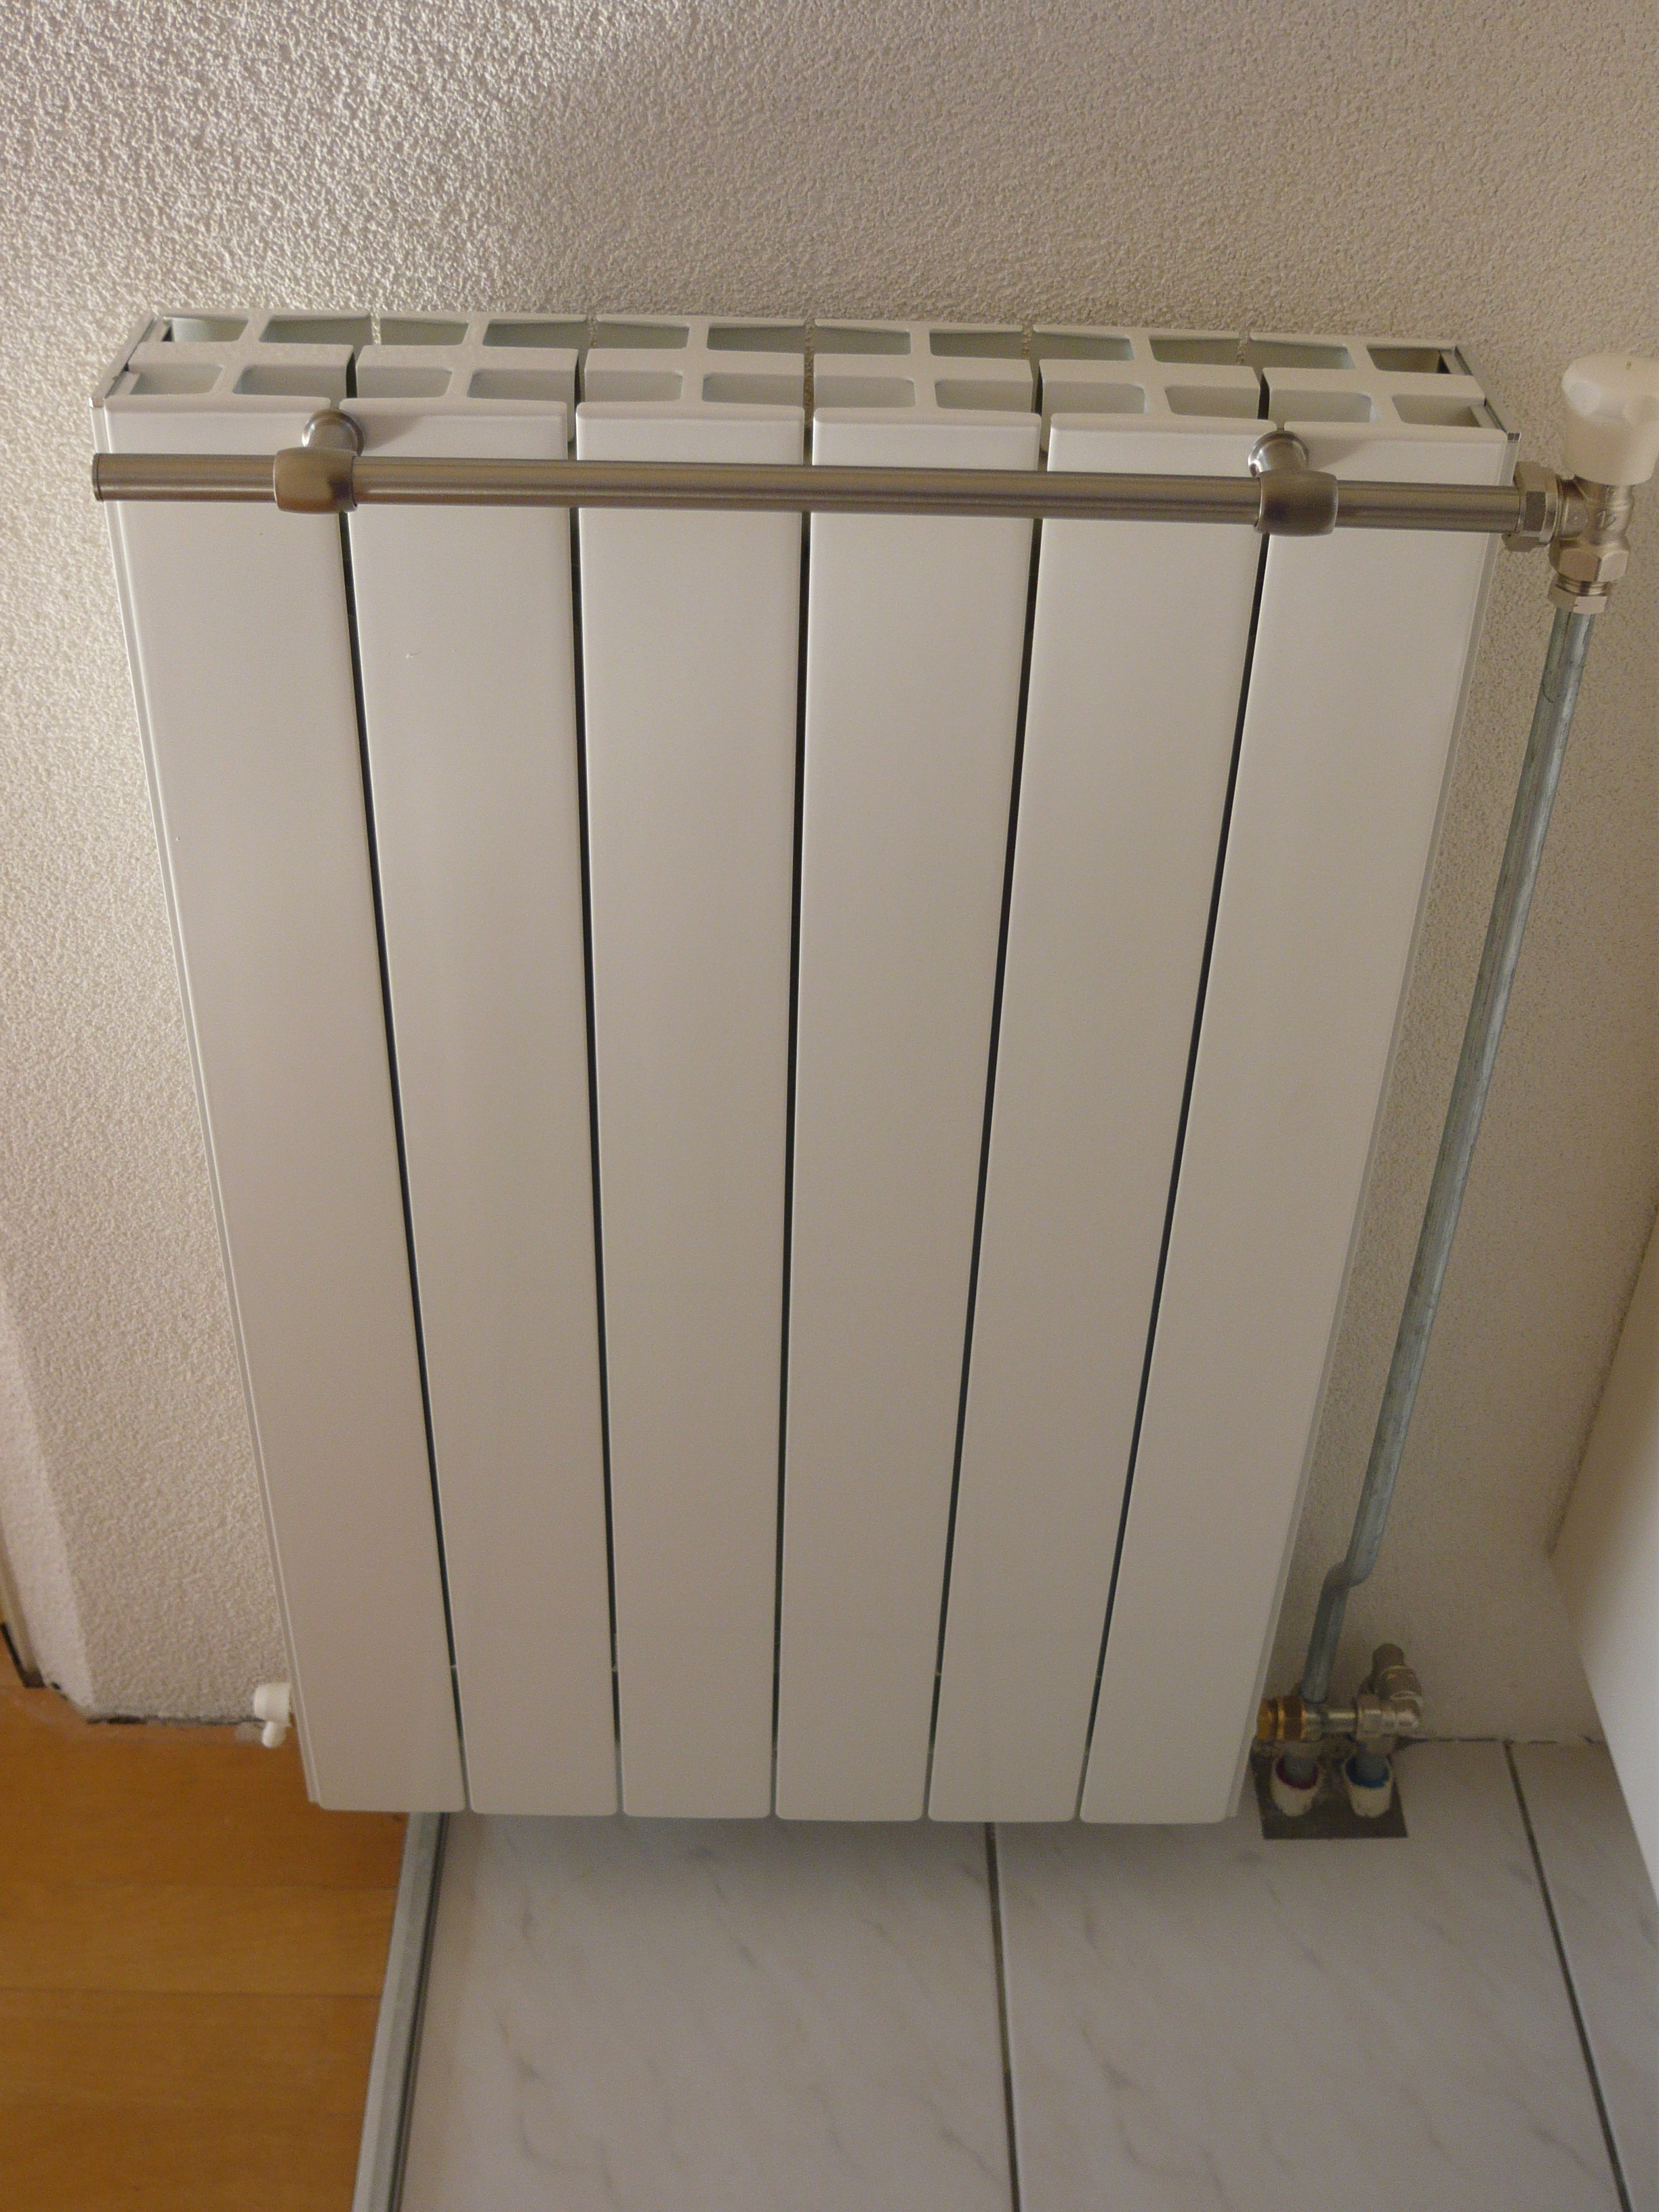 esignradiator woonkamer praxis ~ lactate for ., Deco ideeën